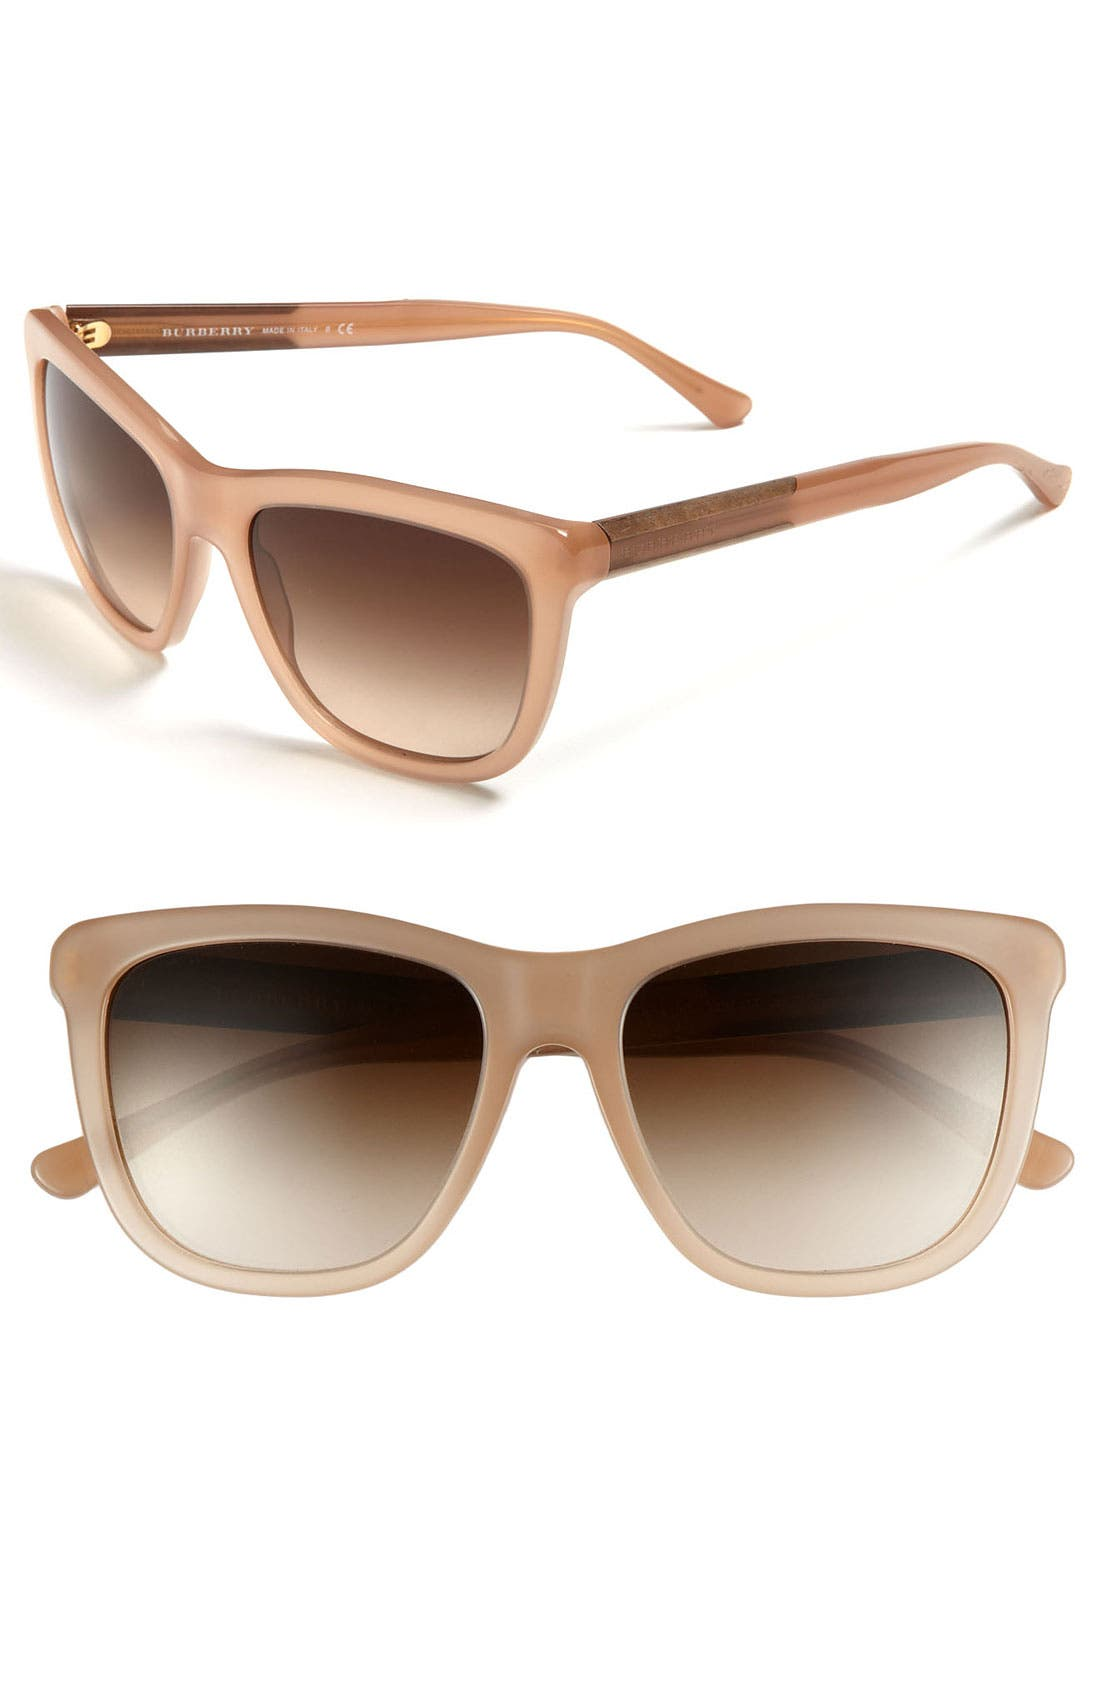 Alternate Image 1 Selected - Burberry 55mm Cat Eye Sunglasses